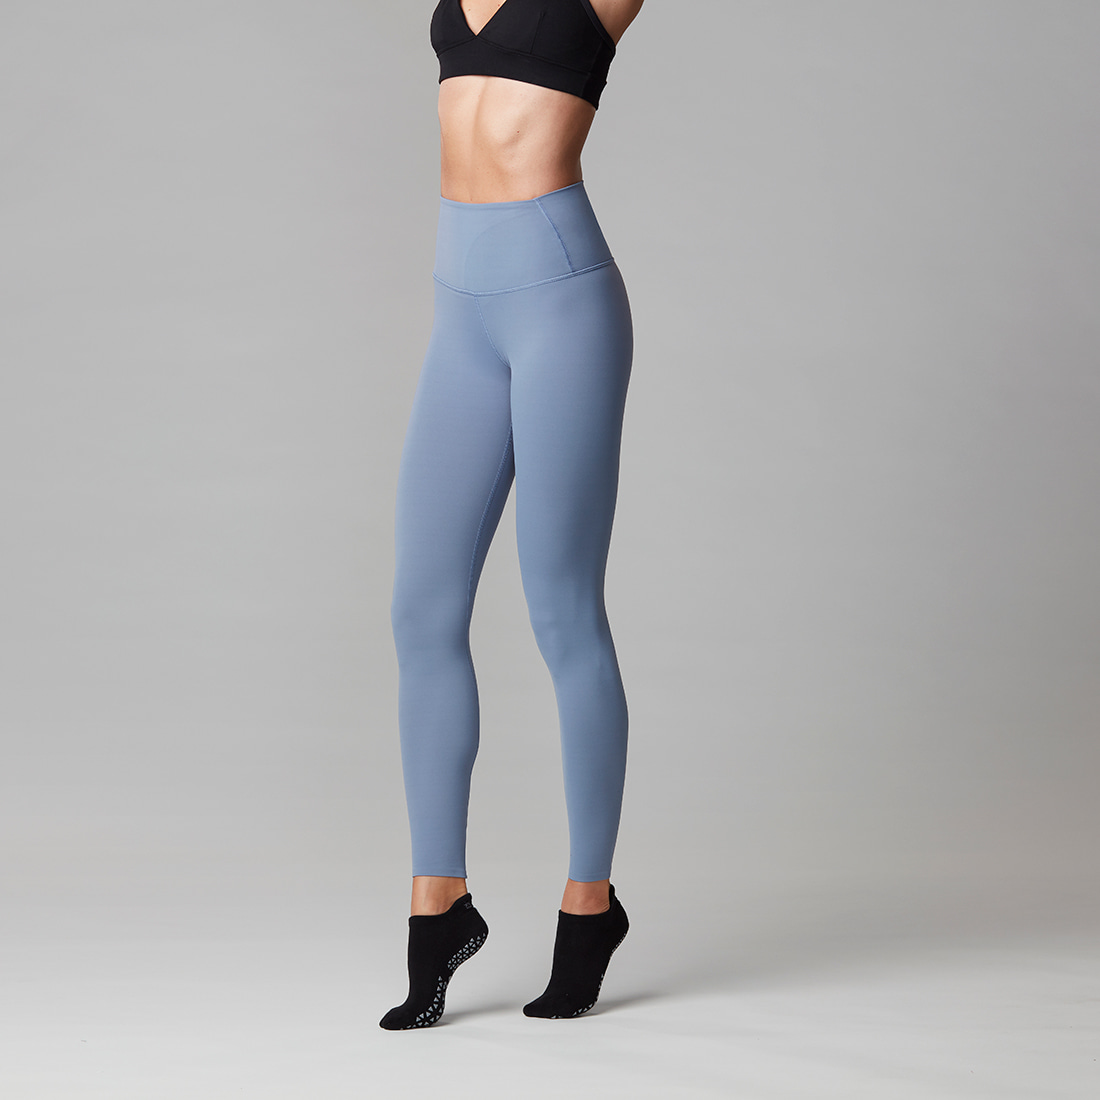 TaviNoir High Waisted Tight Slate Blue